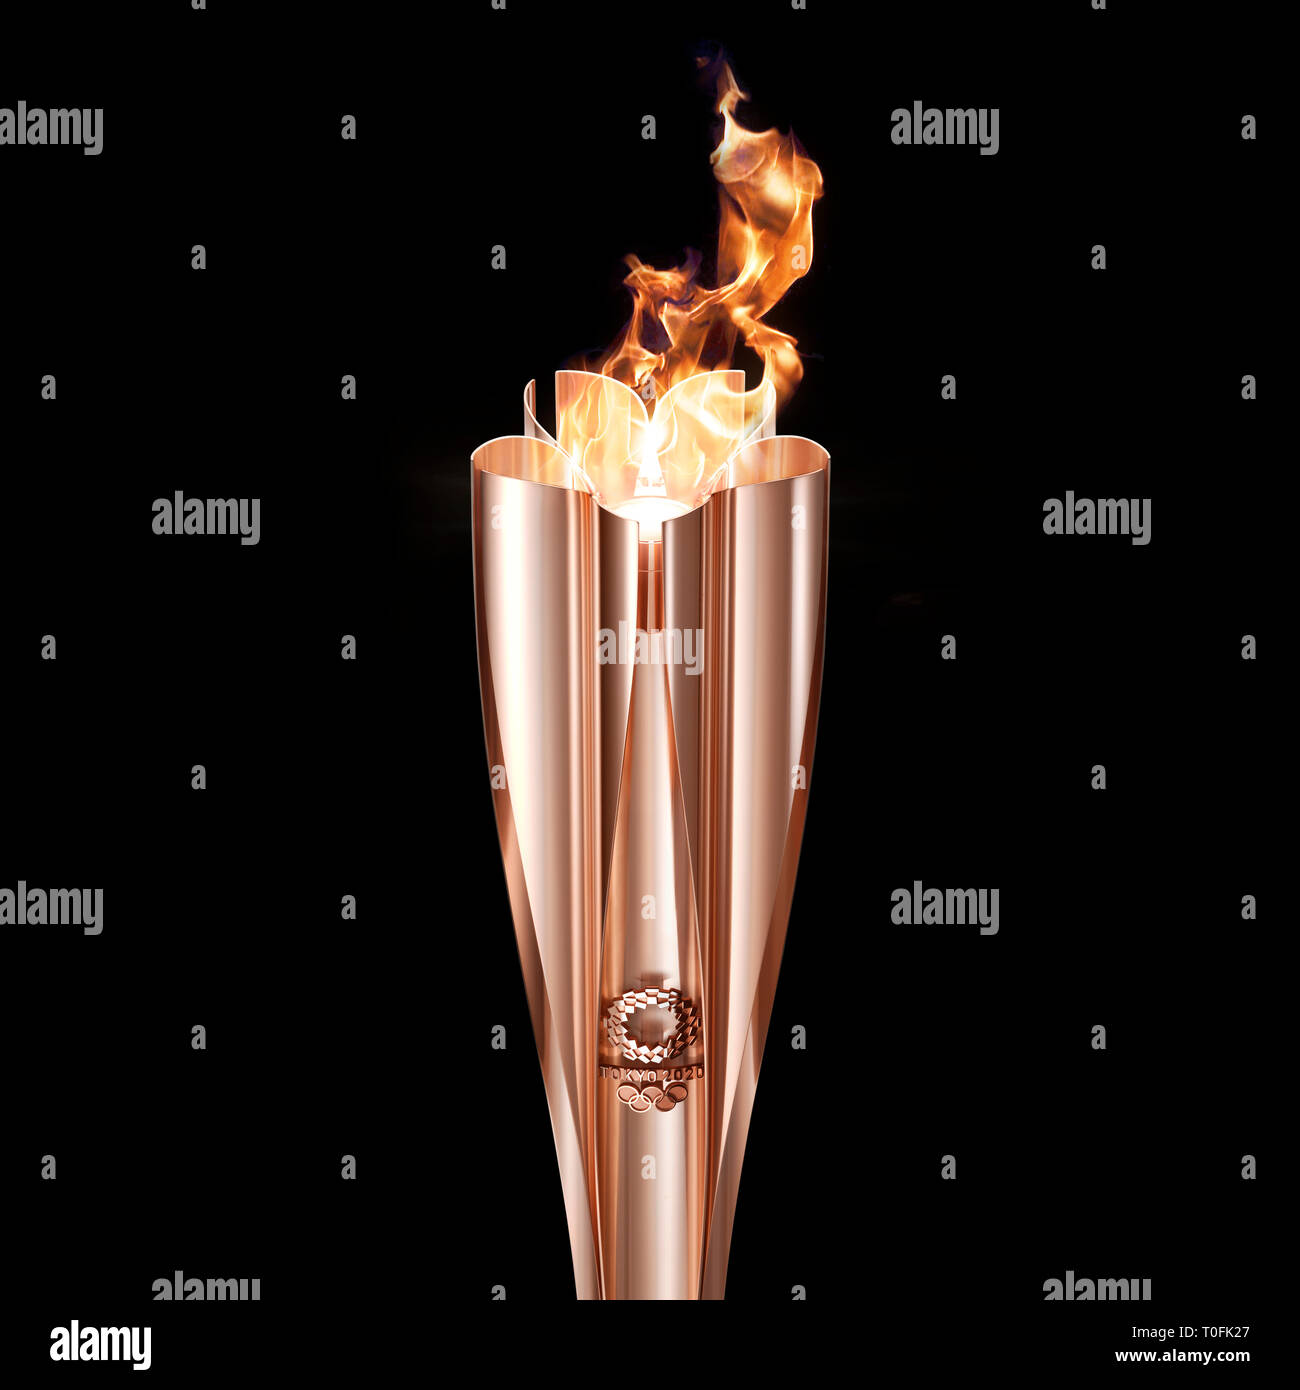 Tokyo, Japan. 20th Mar, 2019. Tokyo Organizing Committee of the Olympic and Paralympic Games (Tokyo 2020) shows the prototype of the Tokyo 2020 Olympic Torch. Tokyo 2020 unveiled the prototype of the Tokyo 2020 Olympic Torch on Wednesday. The motif of Tokyo 2020 Olympic Torch is cherry blossom. Aluminum recycled from temporary housing used in areas struck by the Great East Japan Earthquake disaster will be used to manufacture the torch. Tokyo 2020) Credit: Xinhua/Alamy Live News - Stock Image